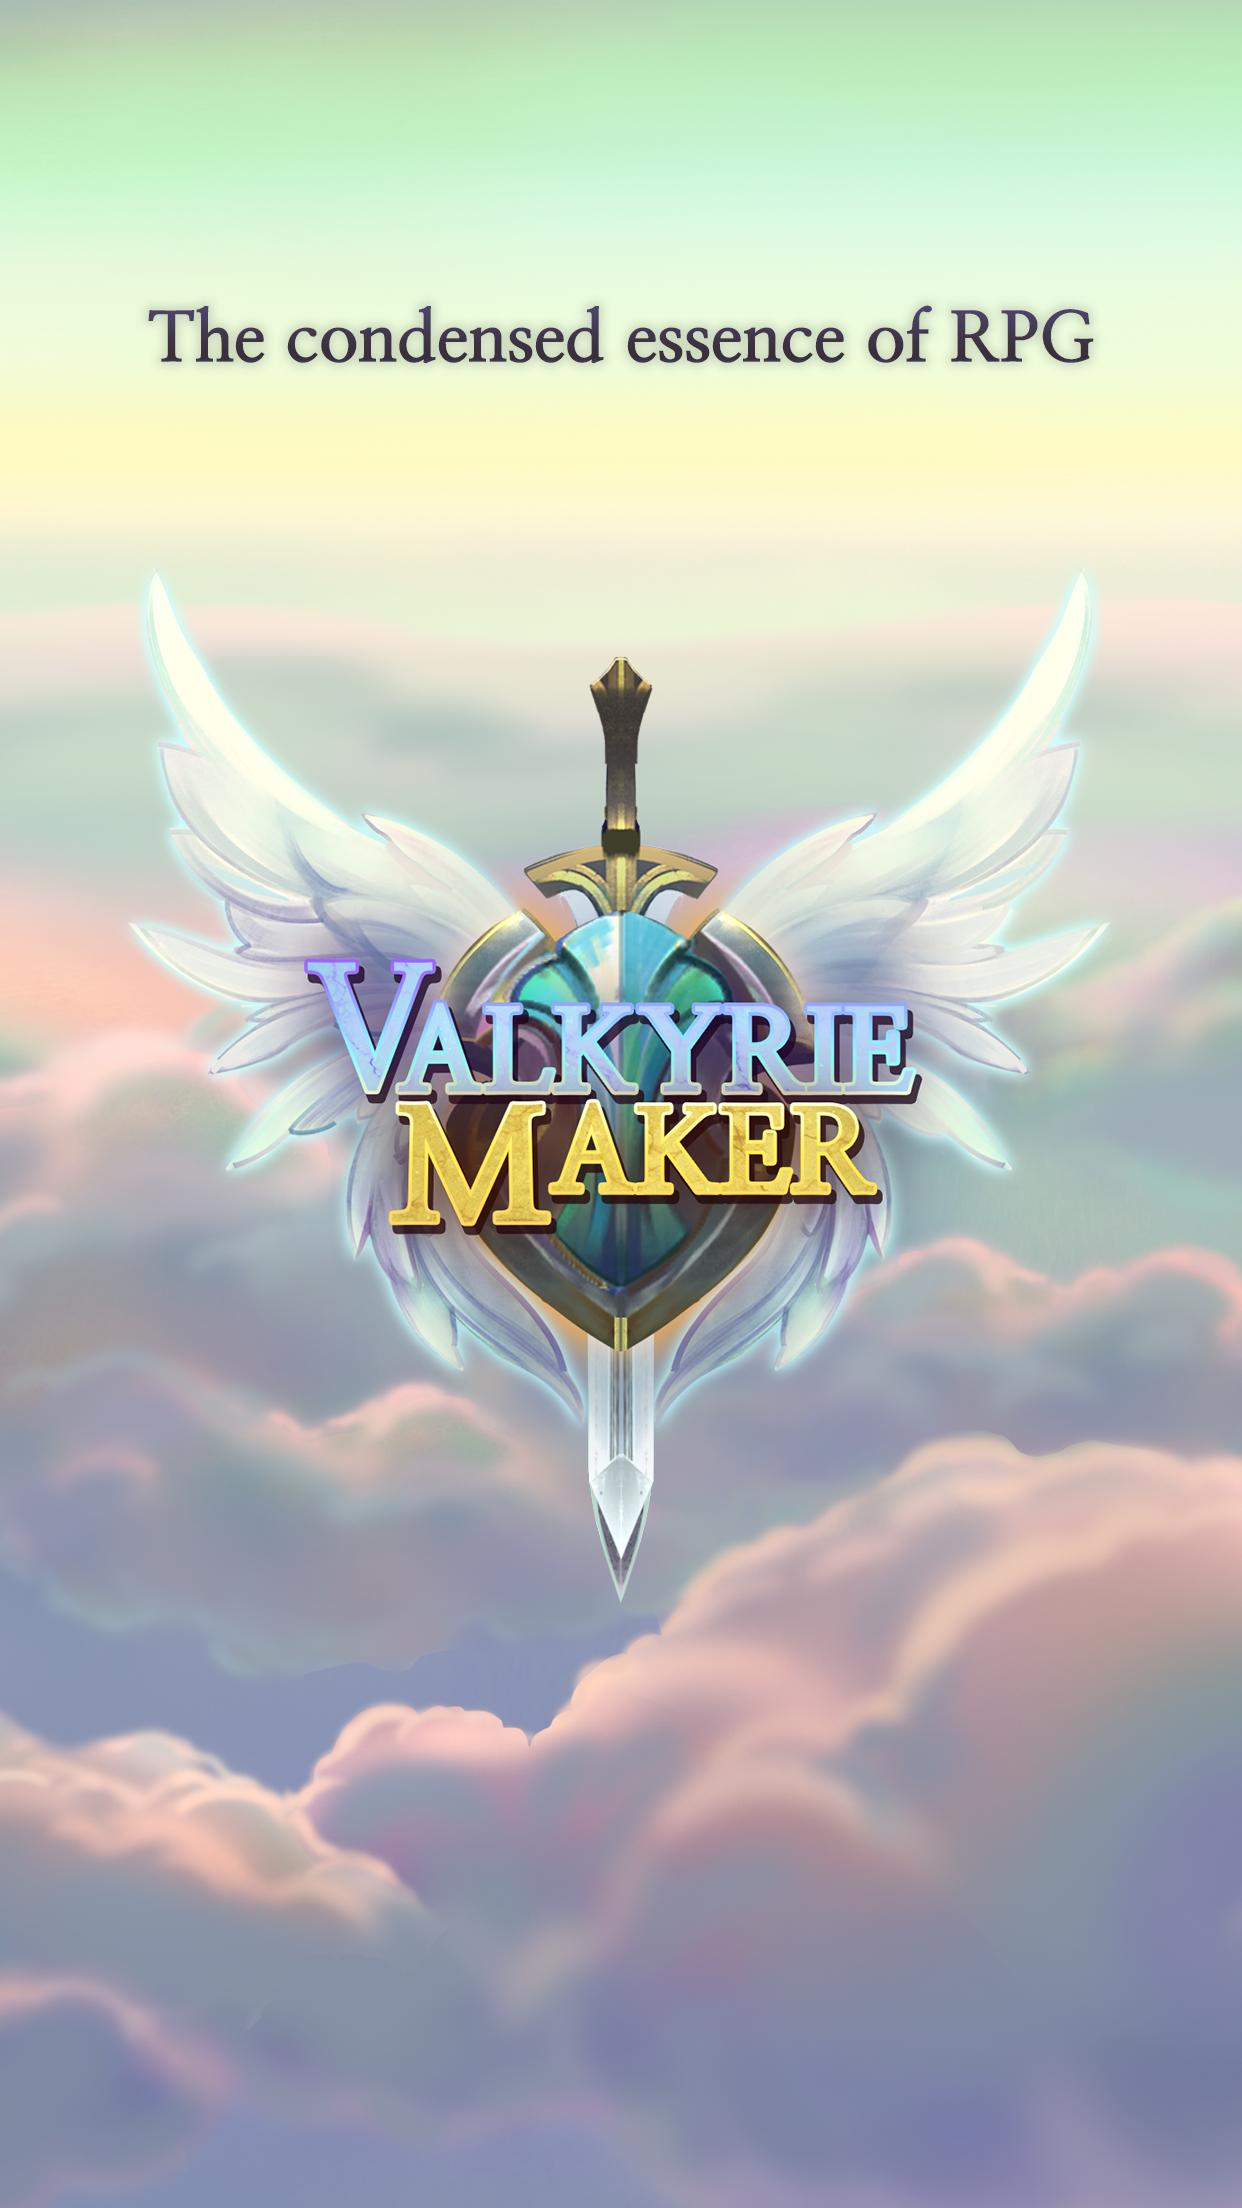 Valkyrie Maker - NoxPlayer only (old Androids) for Android